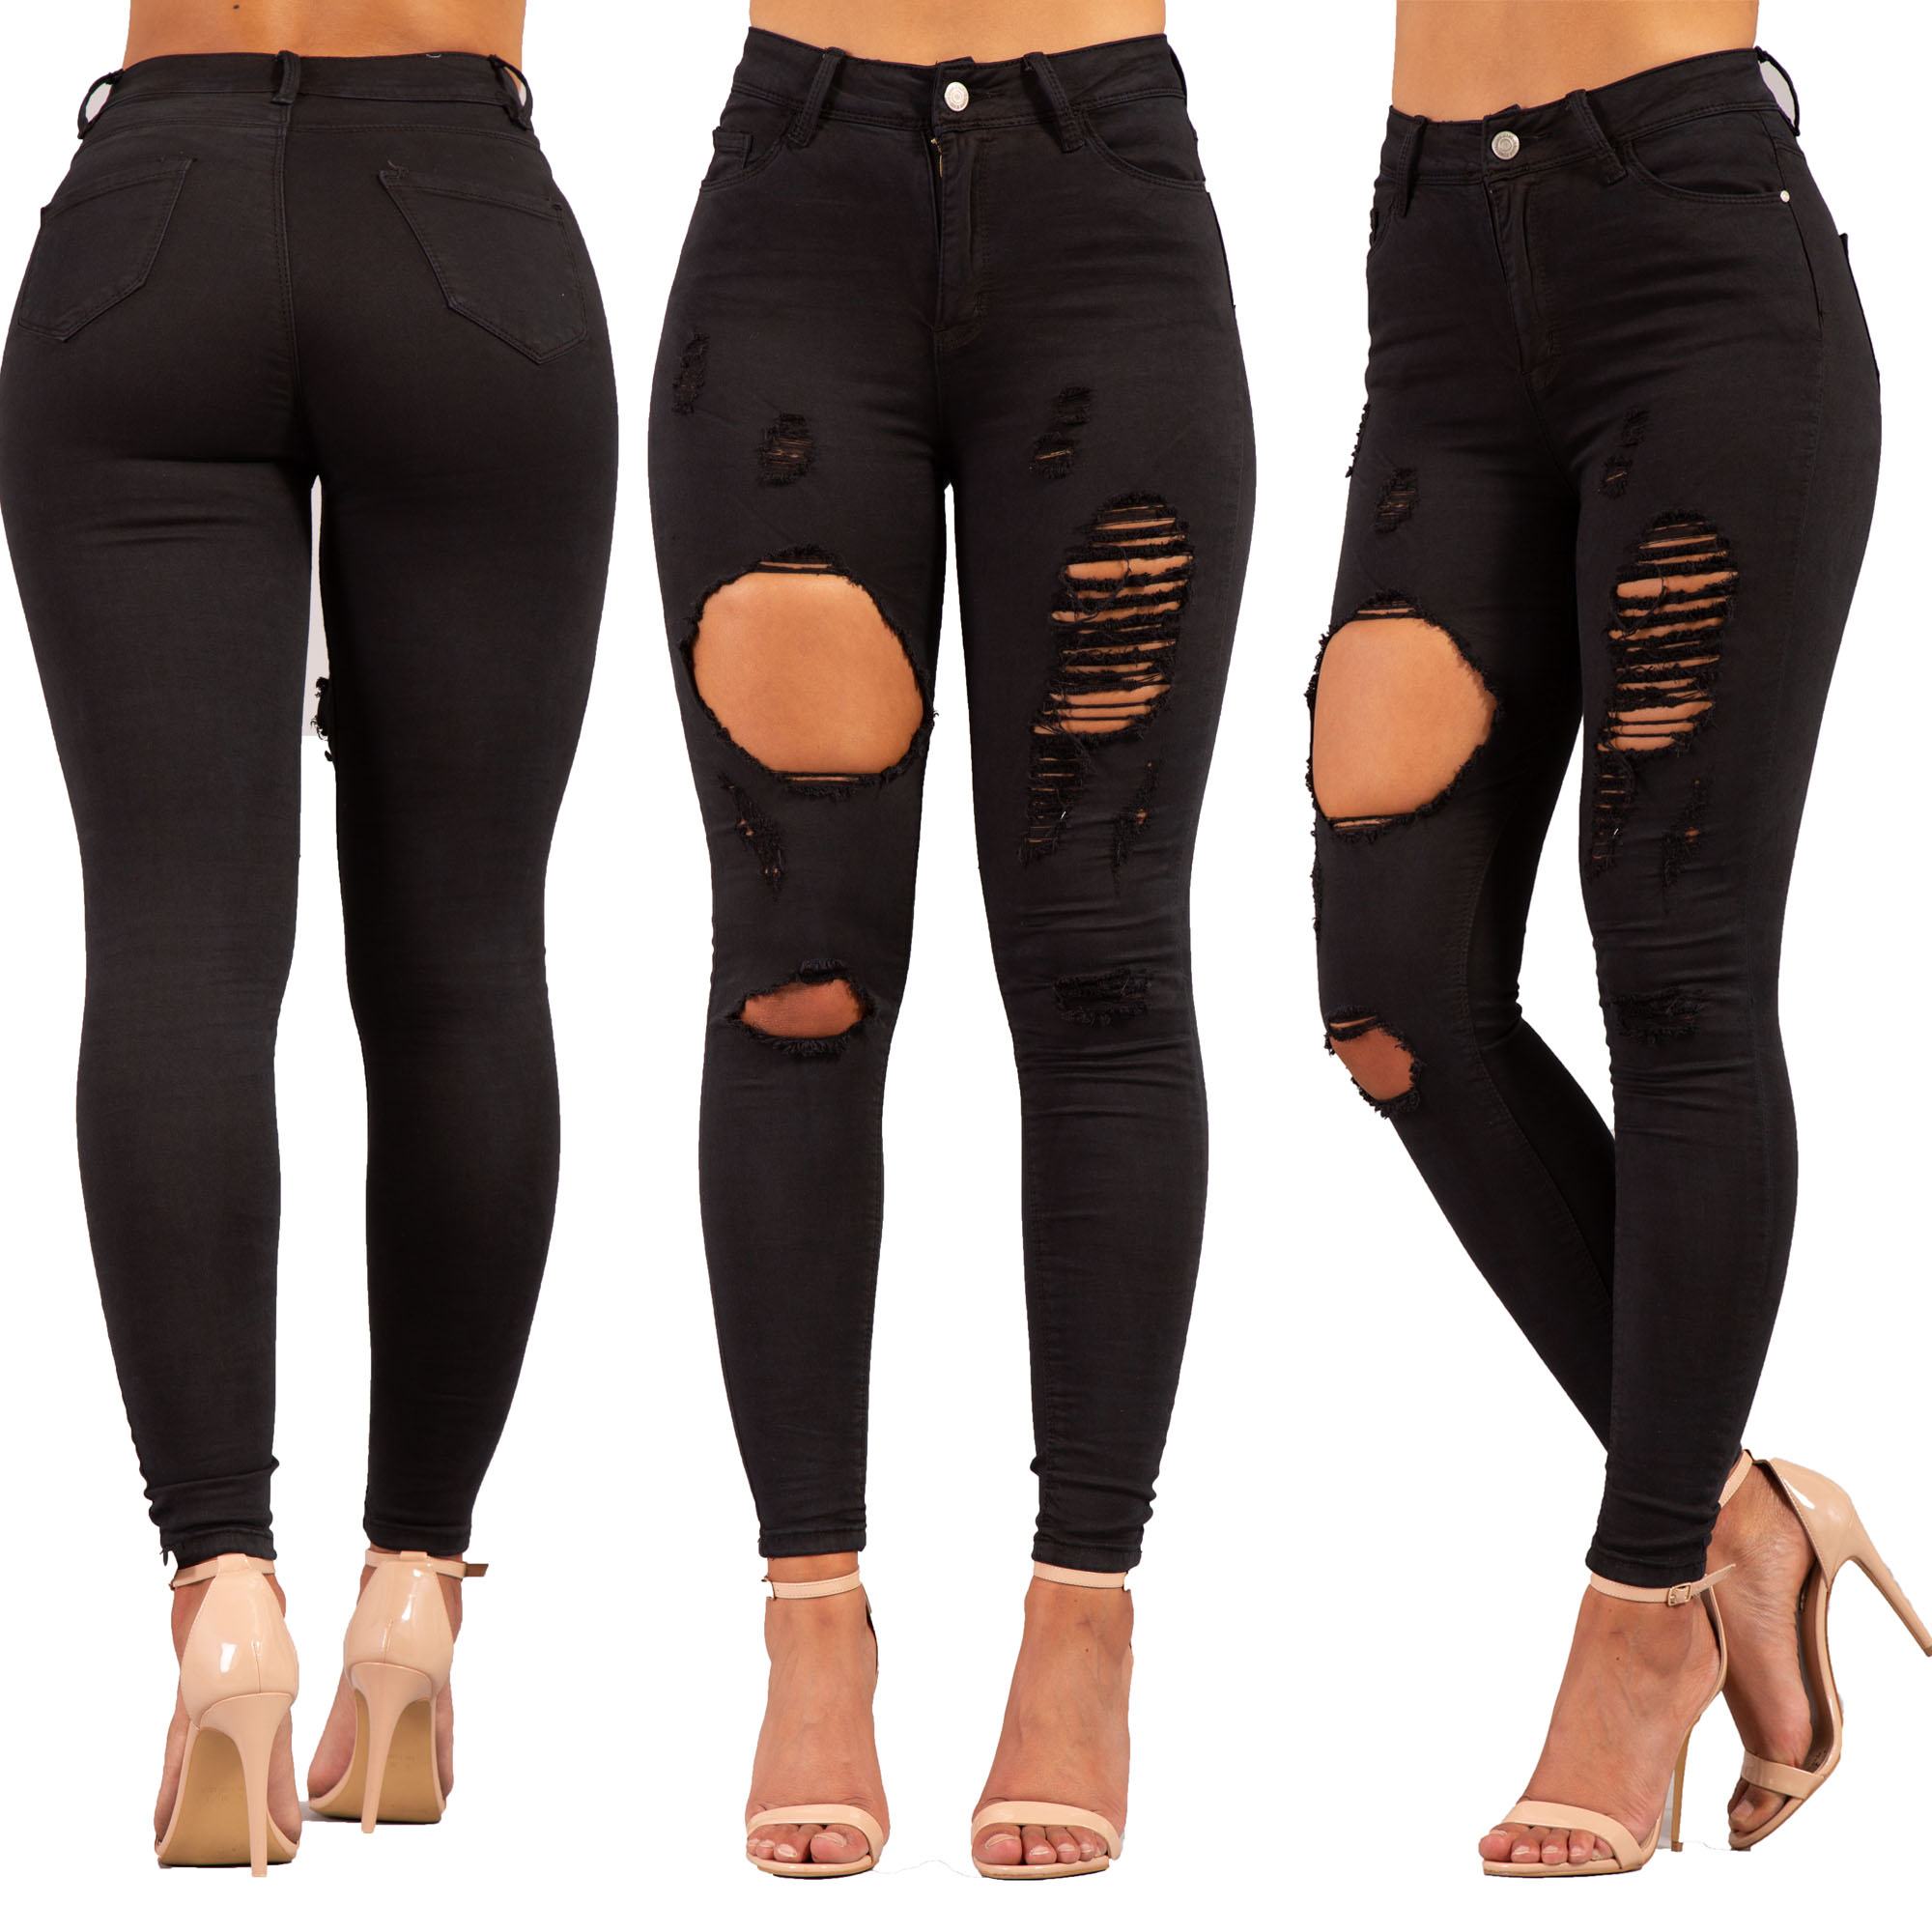 factory price best place closer at Details about Womens Black High Waisted Ripped Jeans Ladies Stretchy  Jeggings Pants Size 6-14